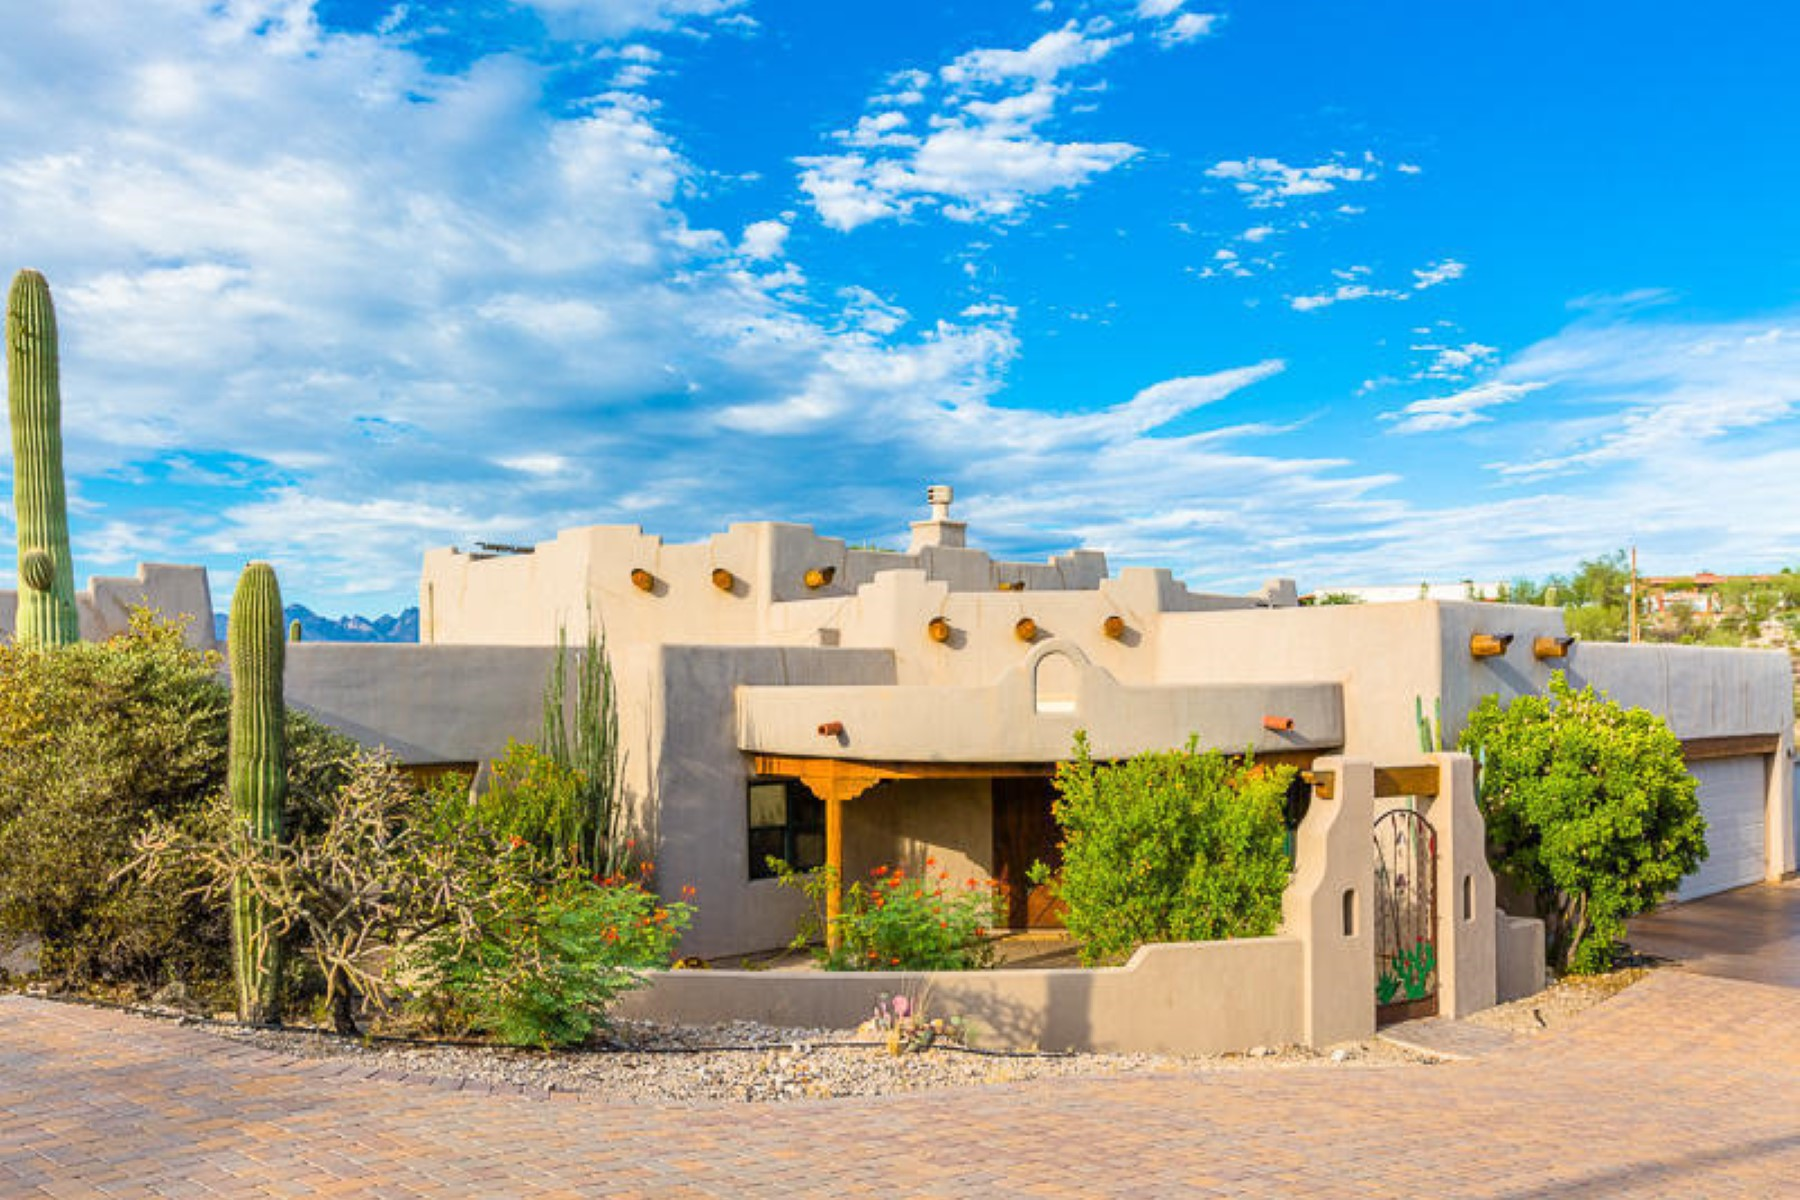 Single Family Home for Sale at Spectacular custom Sante Fe home on a 1.5 acre lot. 1532 N Coral Bells Drive Tucson, Arizona 85745 United States